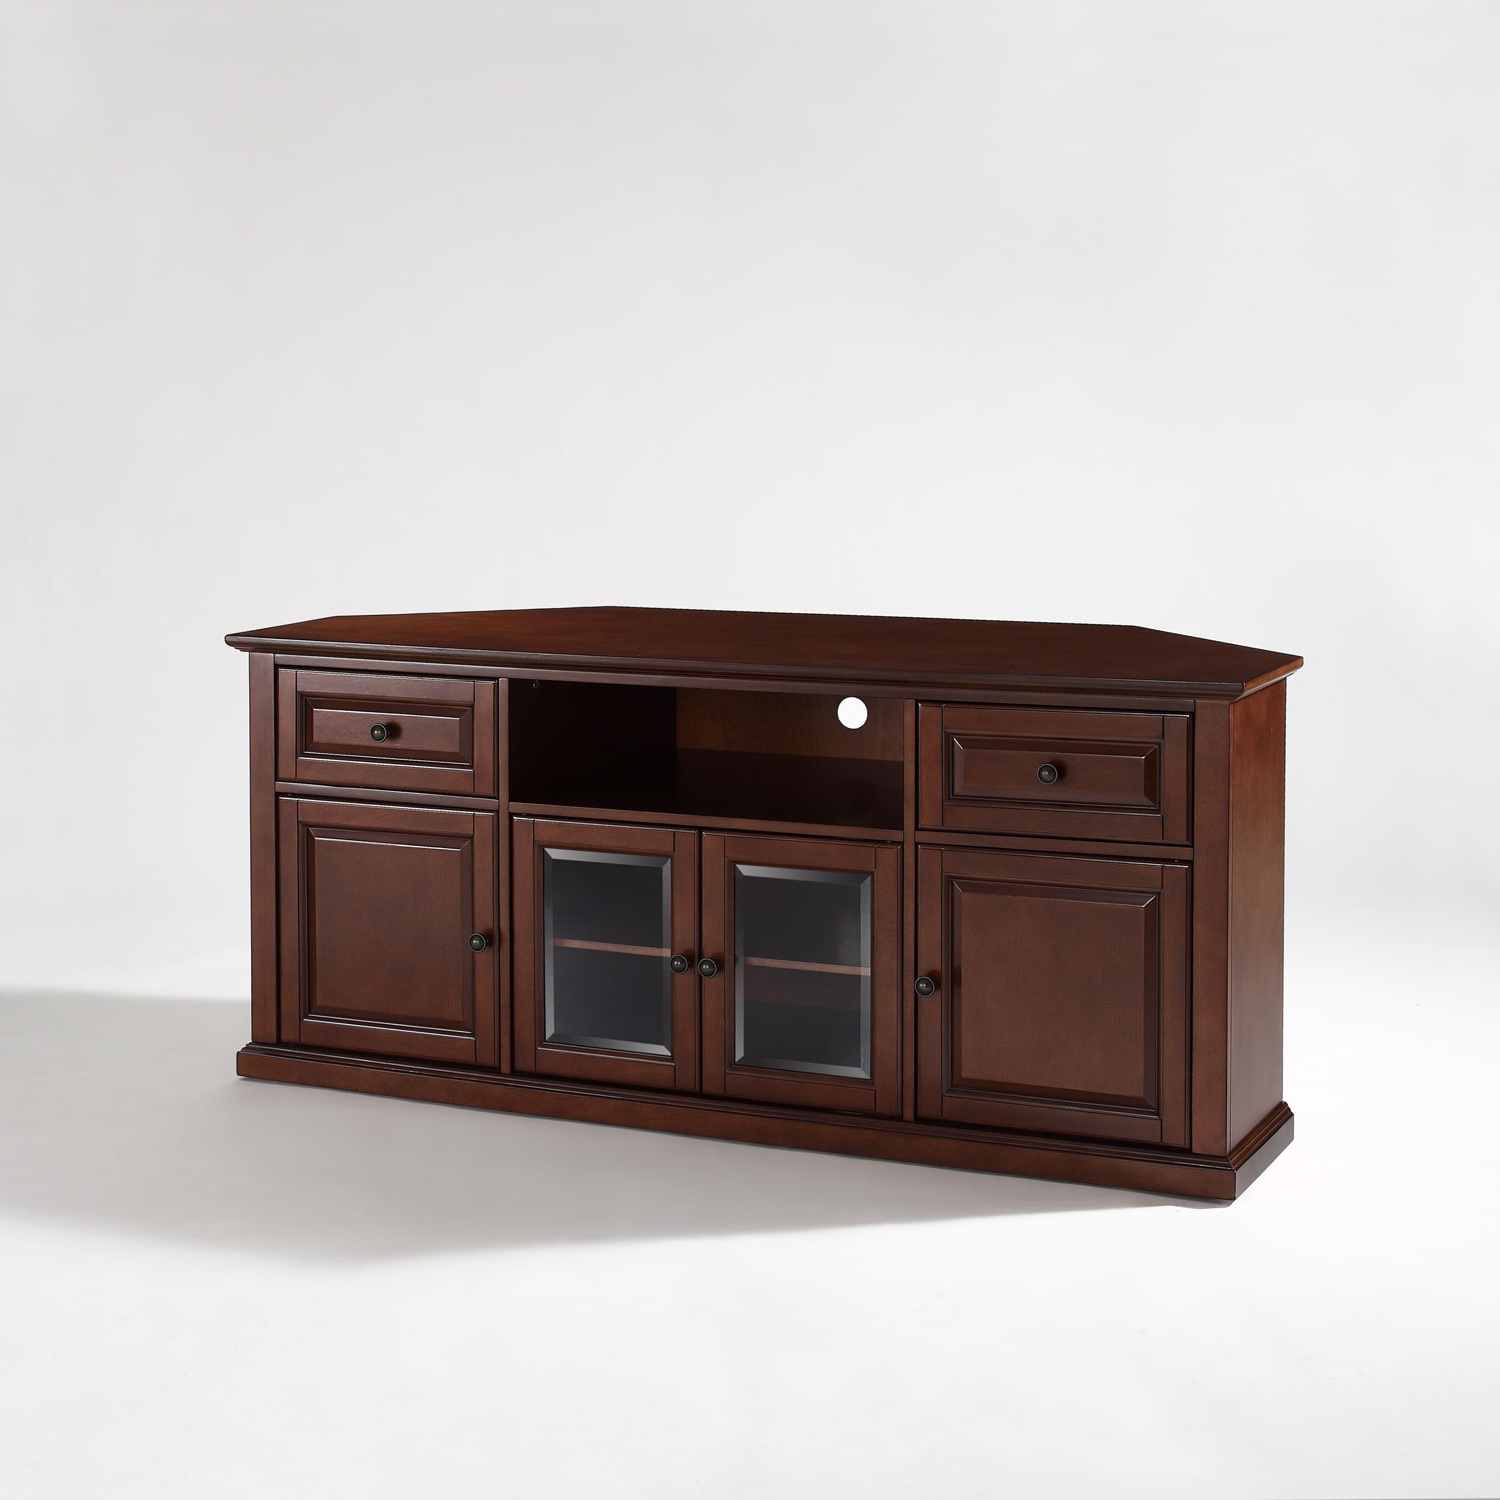 2018 Tv Stands For Corner In Corner Tv Stand In Crosley Furniture Inch Vintage Mahogany Plans (Gallery 18 of 20)